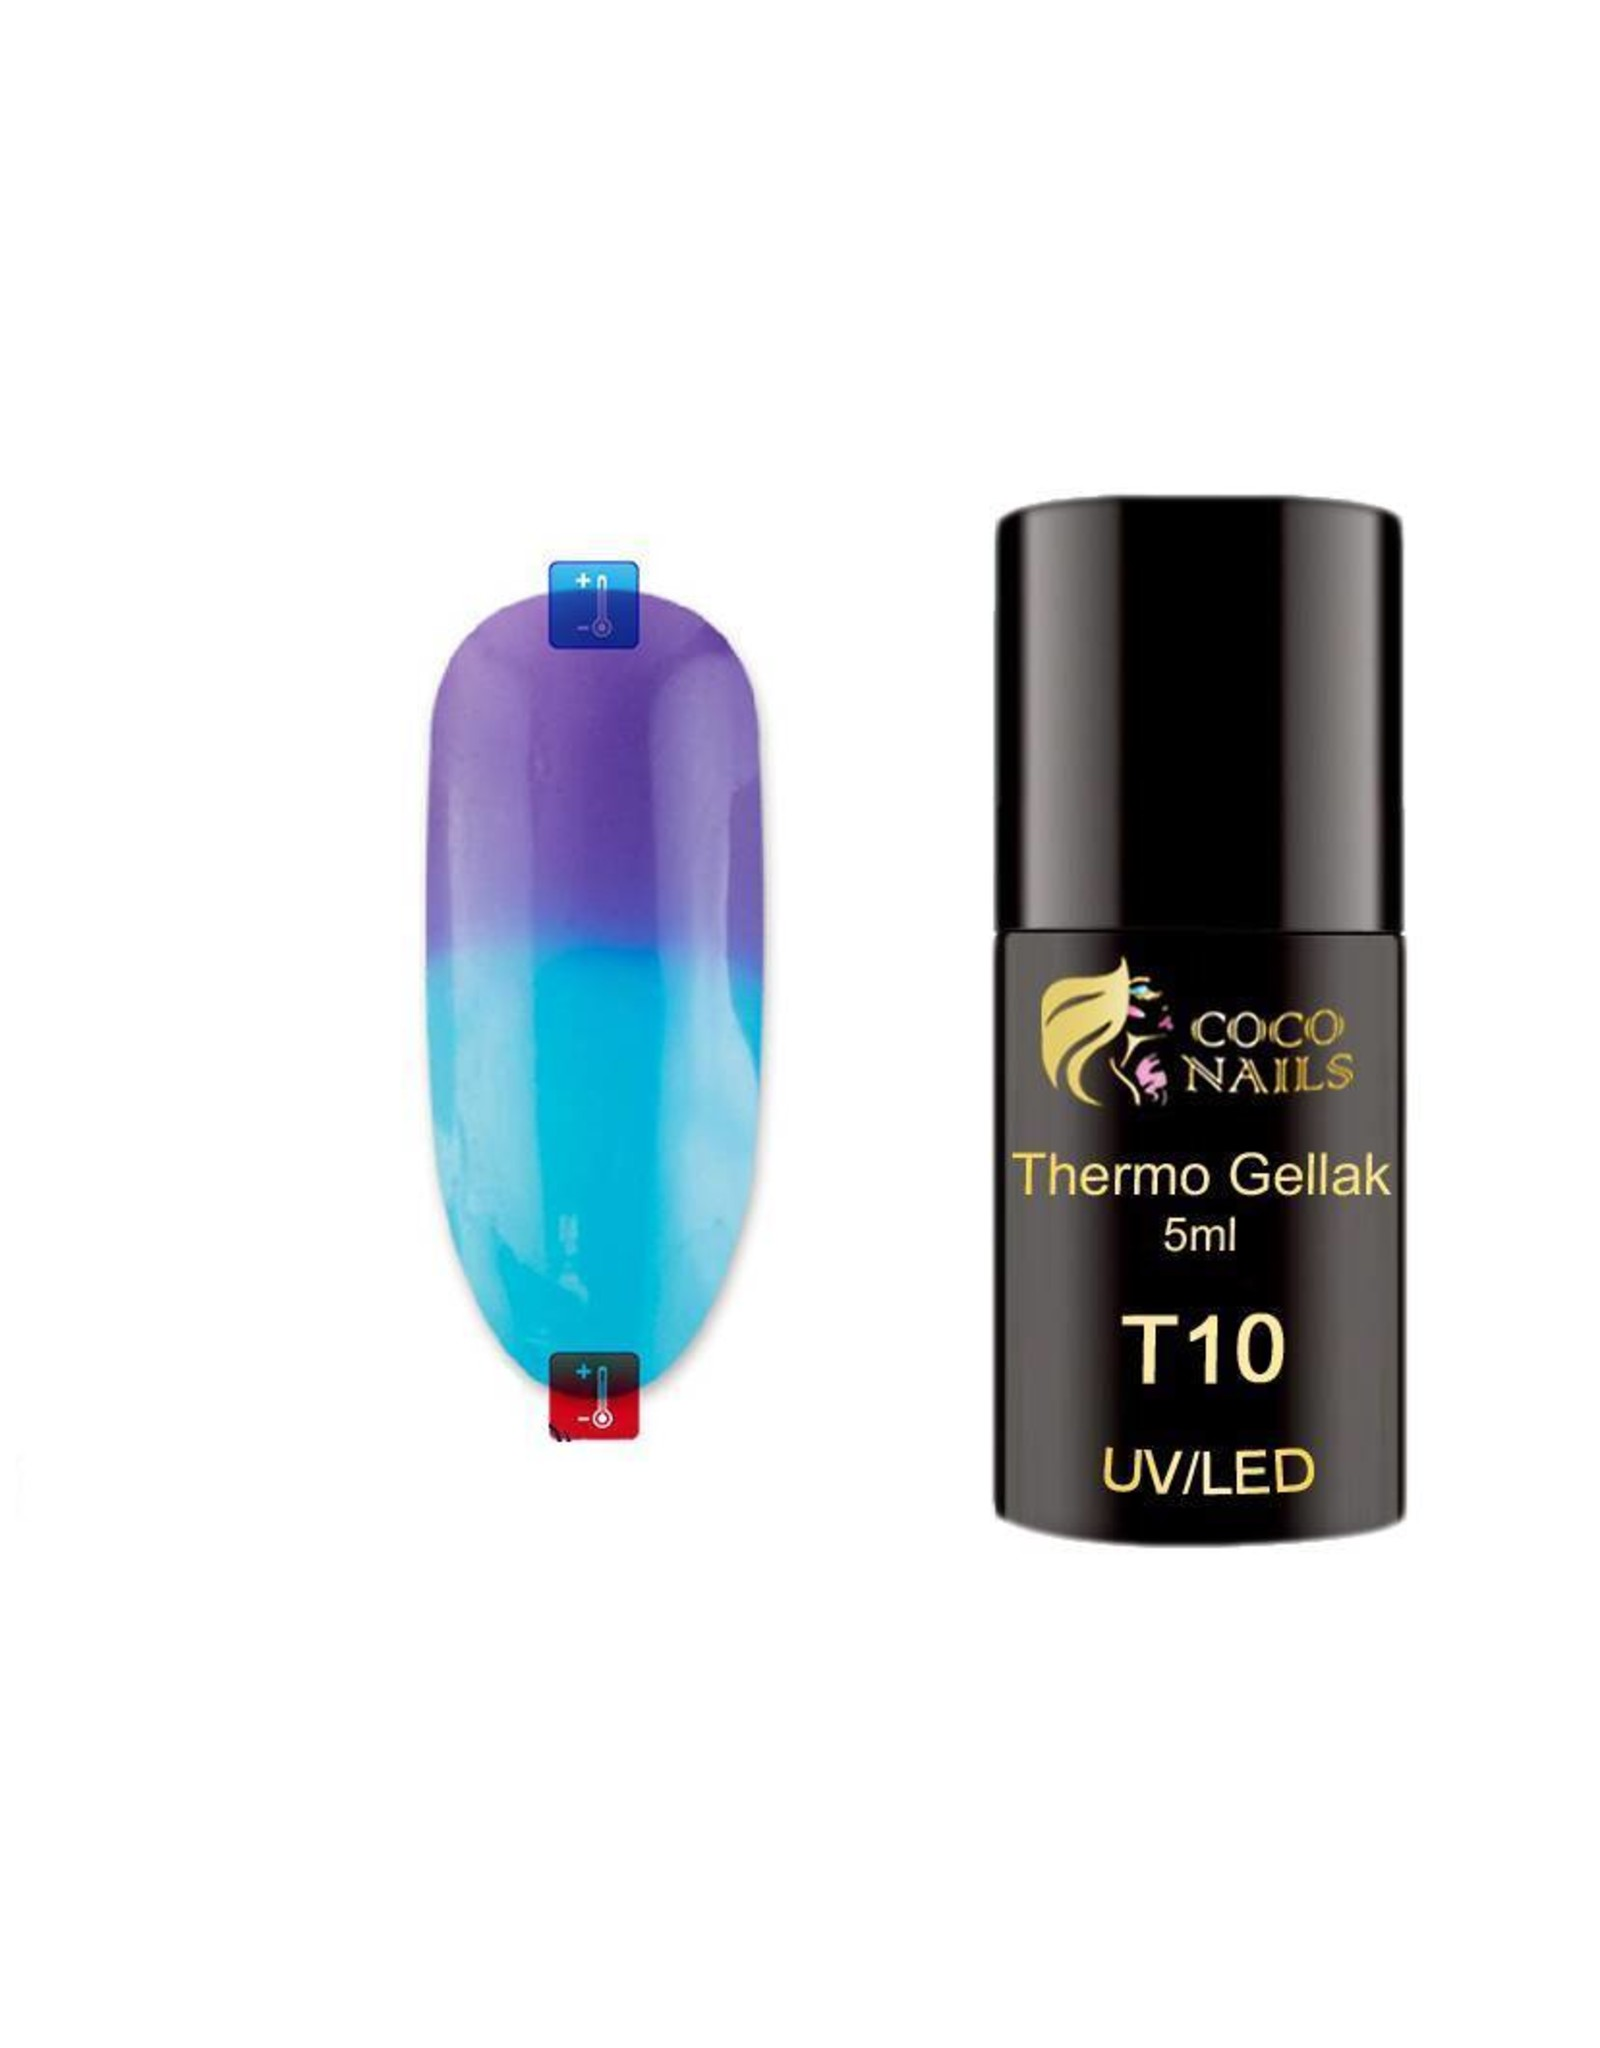 Coconails Thermo gellak Paars/Blauw 5 ml